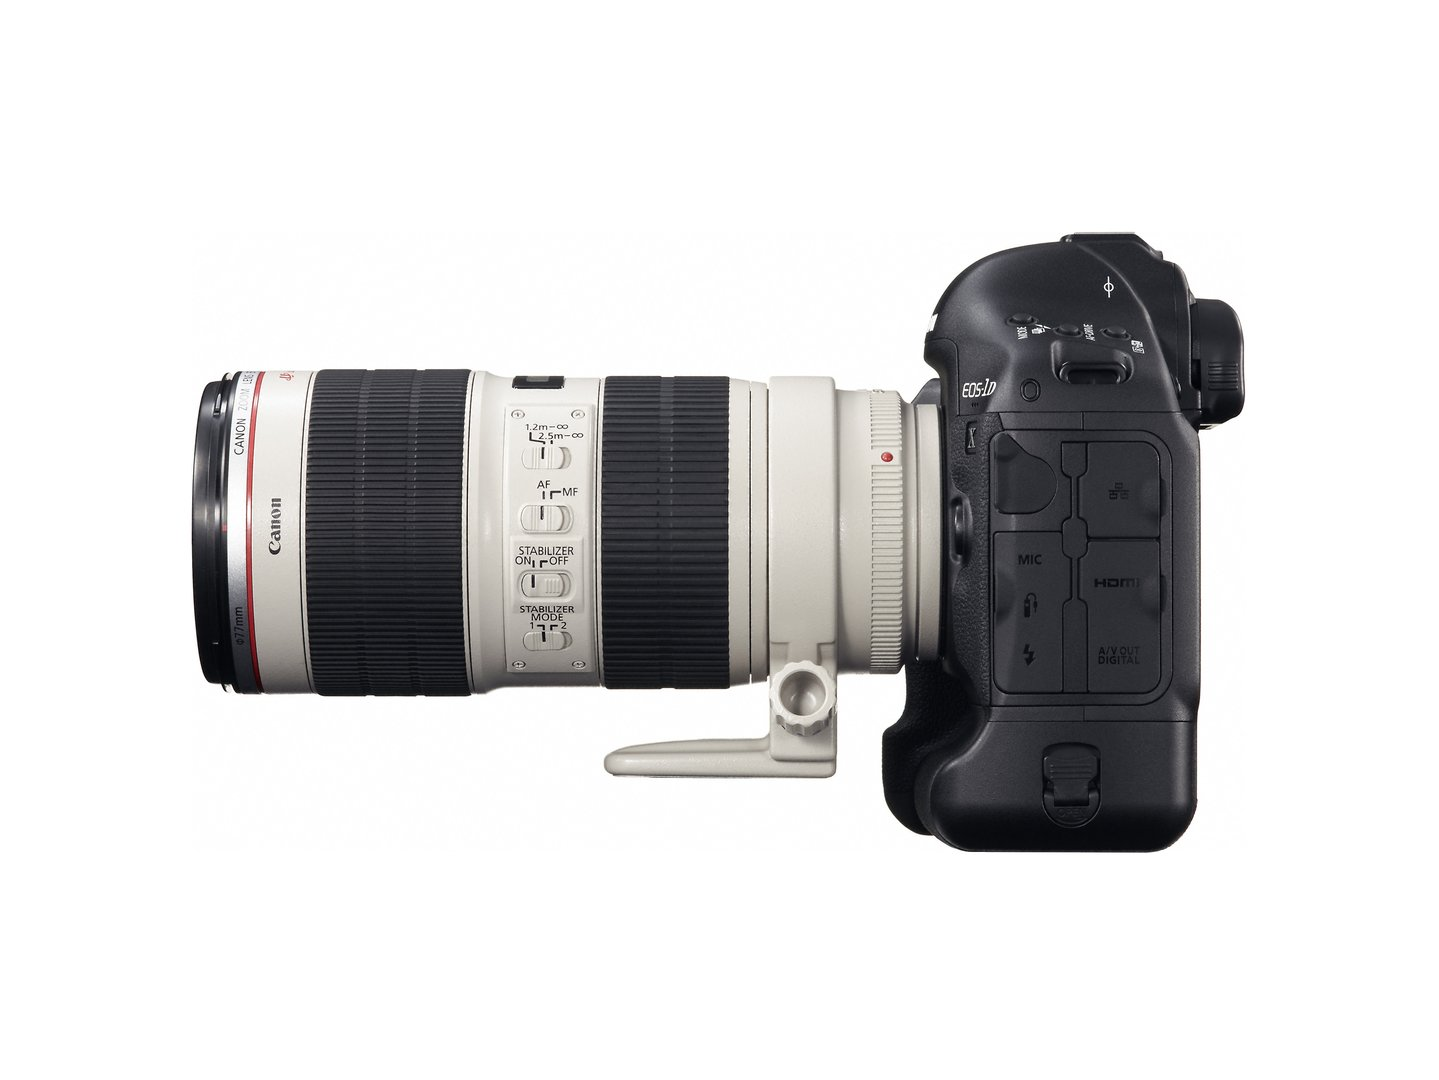 Canon EOS-1D X mit EF 70-200mm 1:2,8L USM IS II